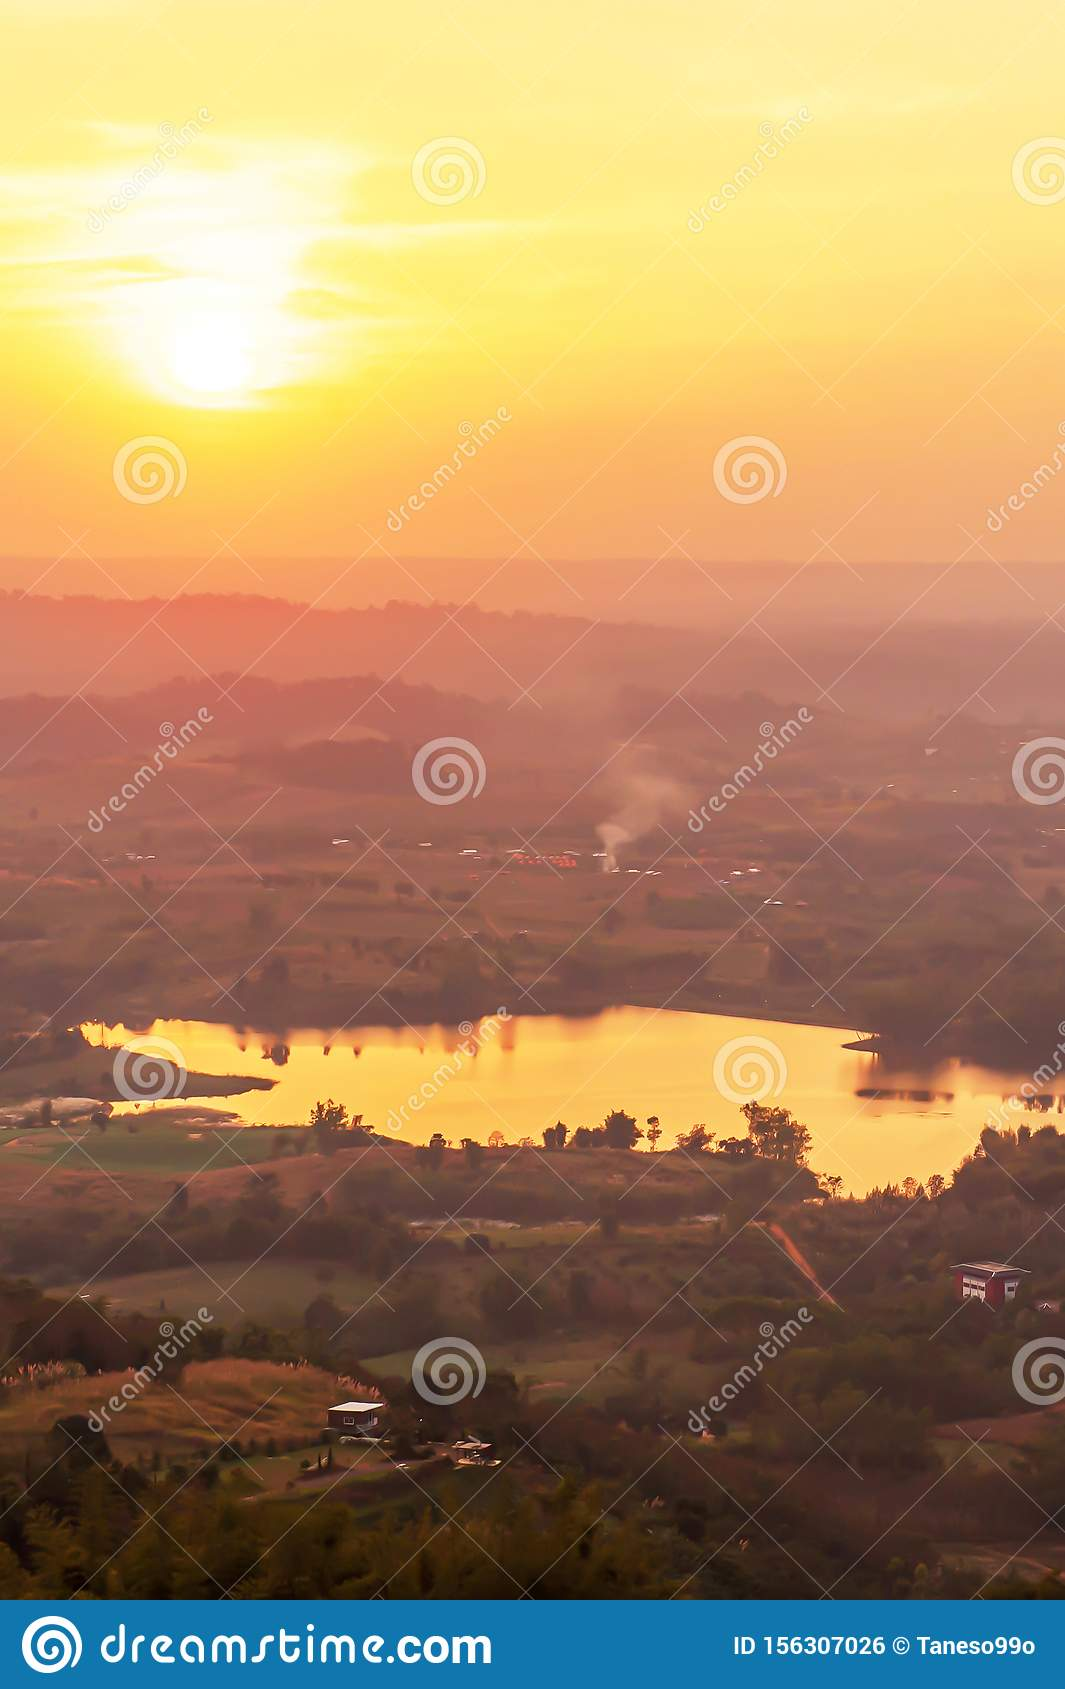 Aerial view of lake with the sun setting over a mountain range